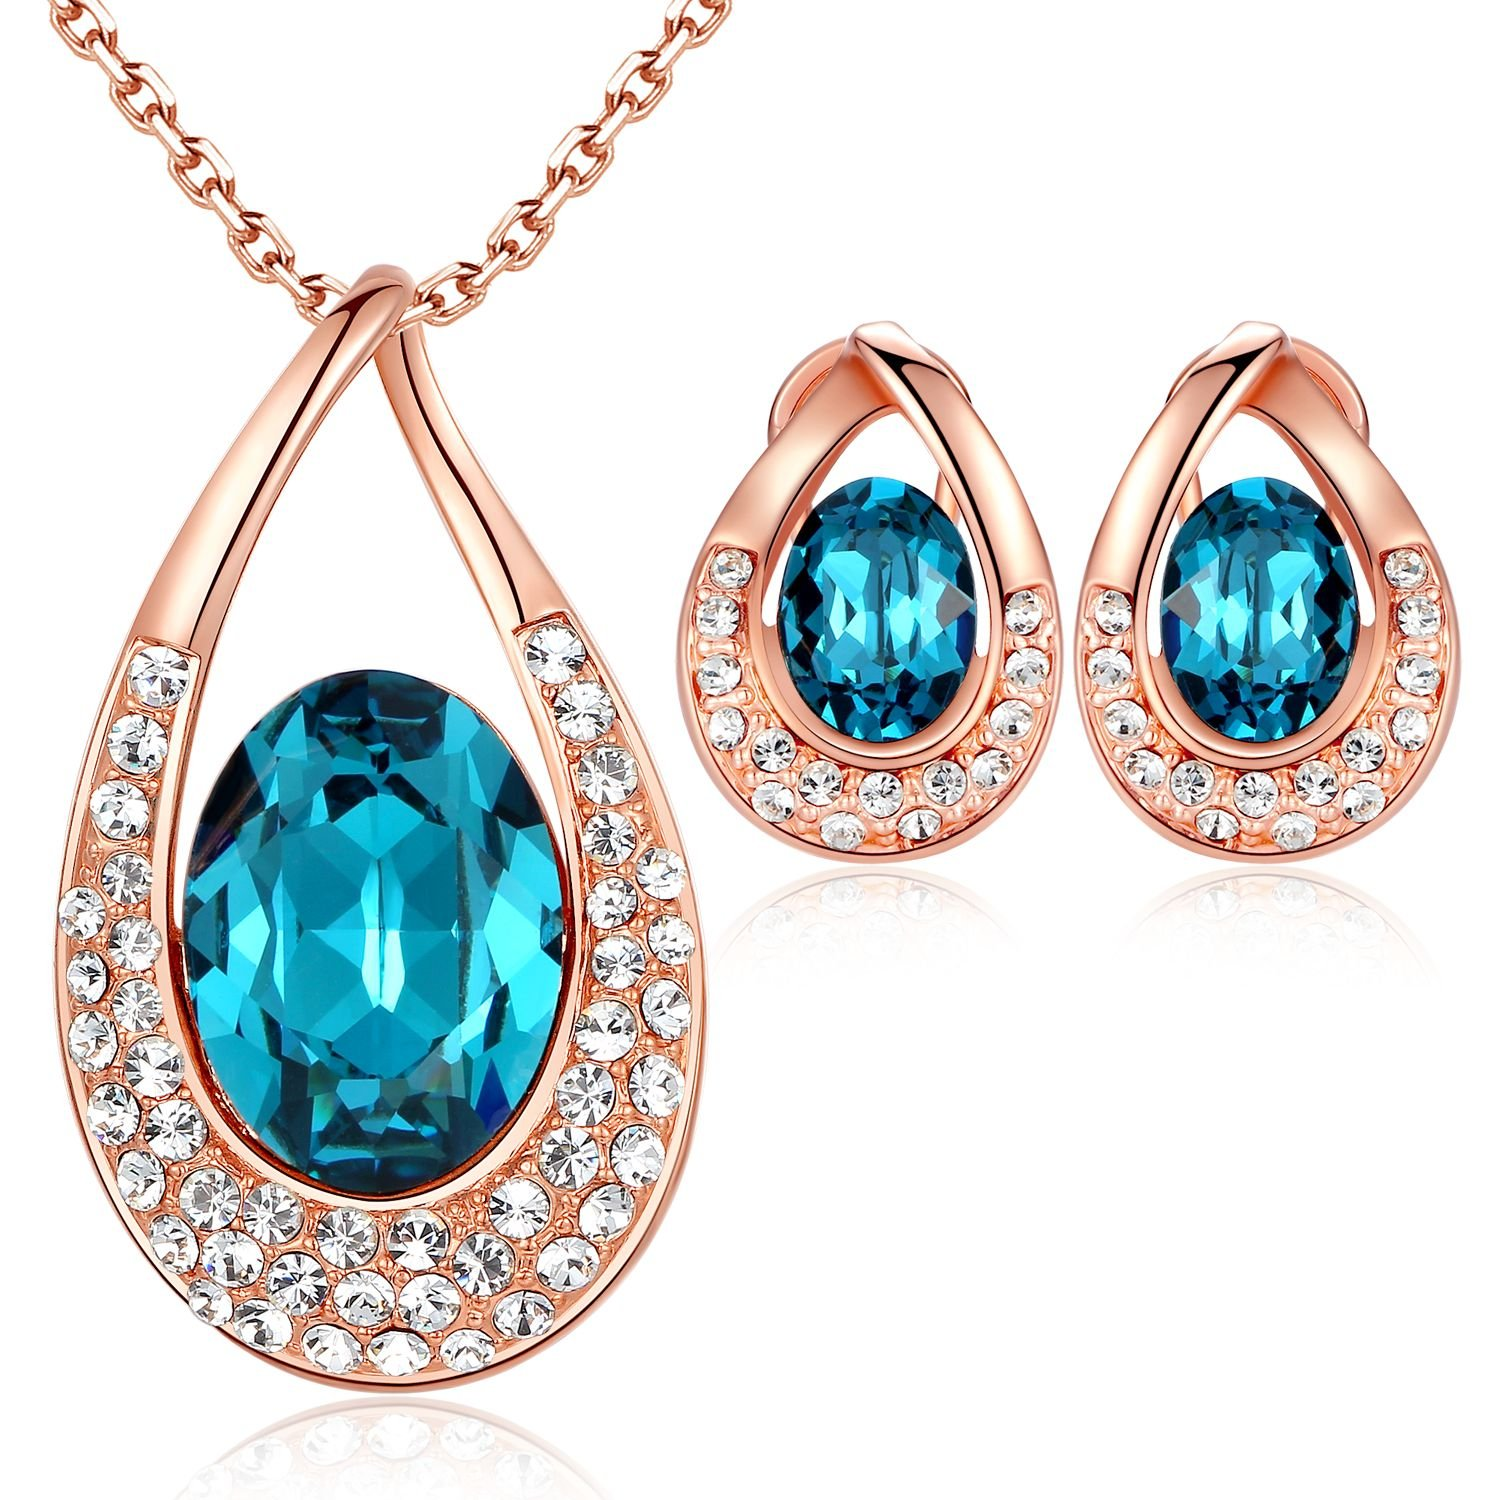 Leafael [Presented by Miss New York] Angel's Teardrop Made with Swarovski Crystals Blue Zircon Jewelry Set Earrings Necklace, 18''+ 2'', 18K Rose Gold Plated, Nickel/Lead/Allergy Box by Leafael